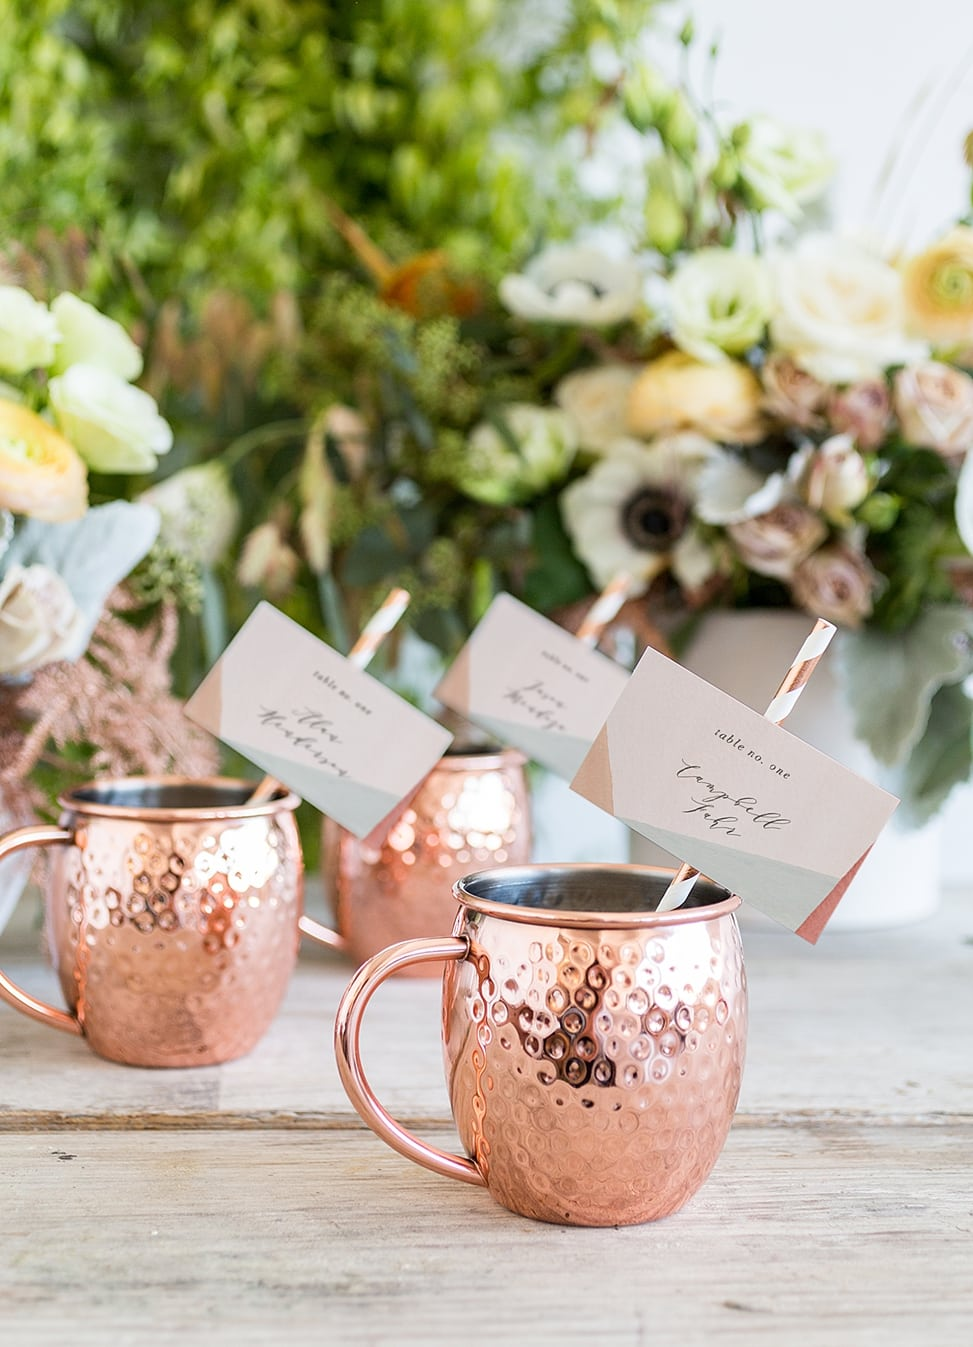 moscow mule cups with paper straws and name cards from minted weddings